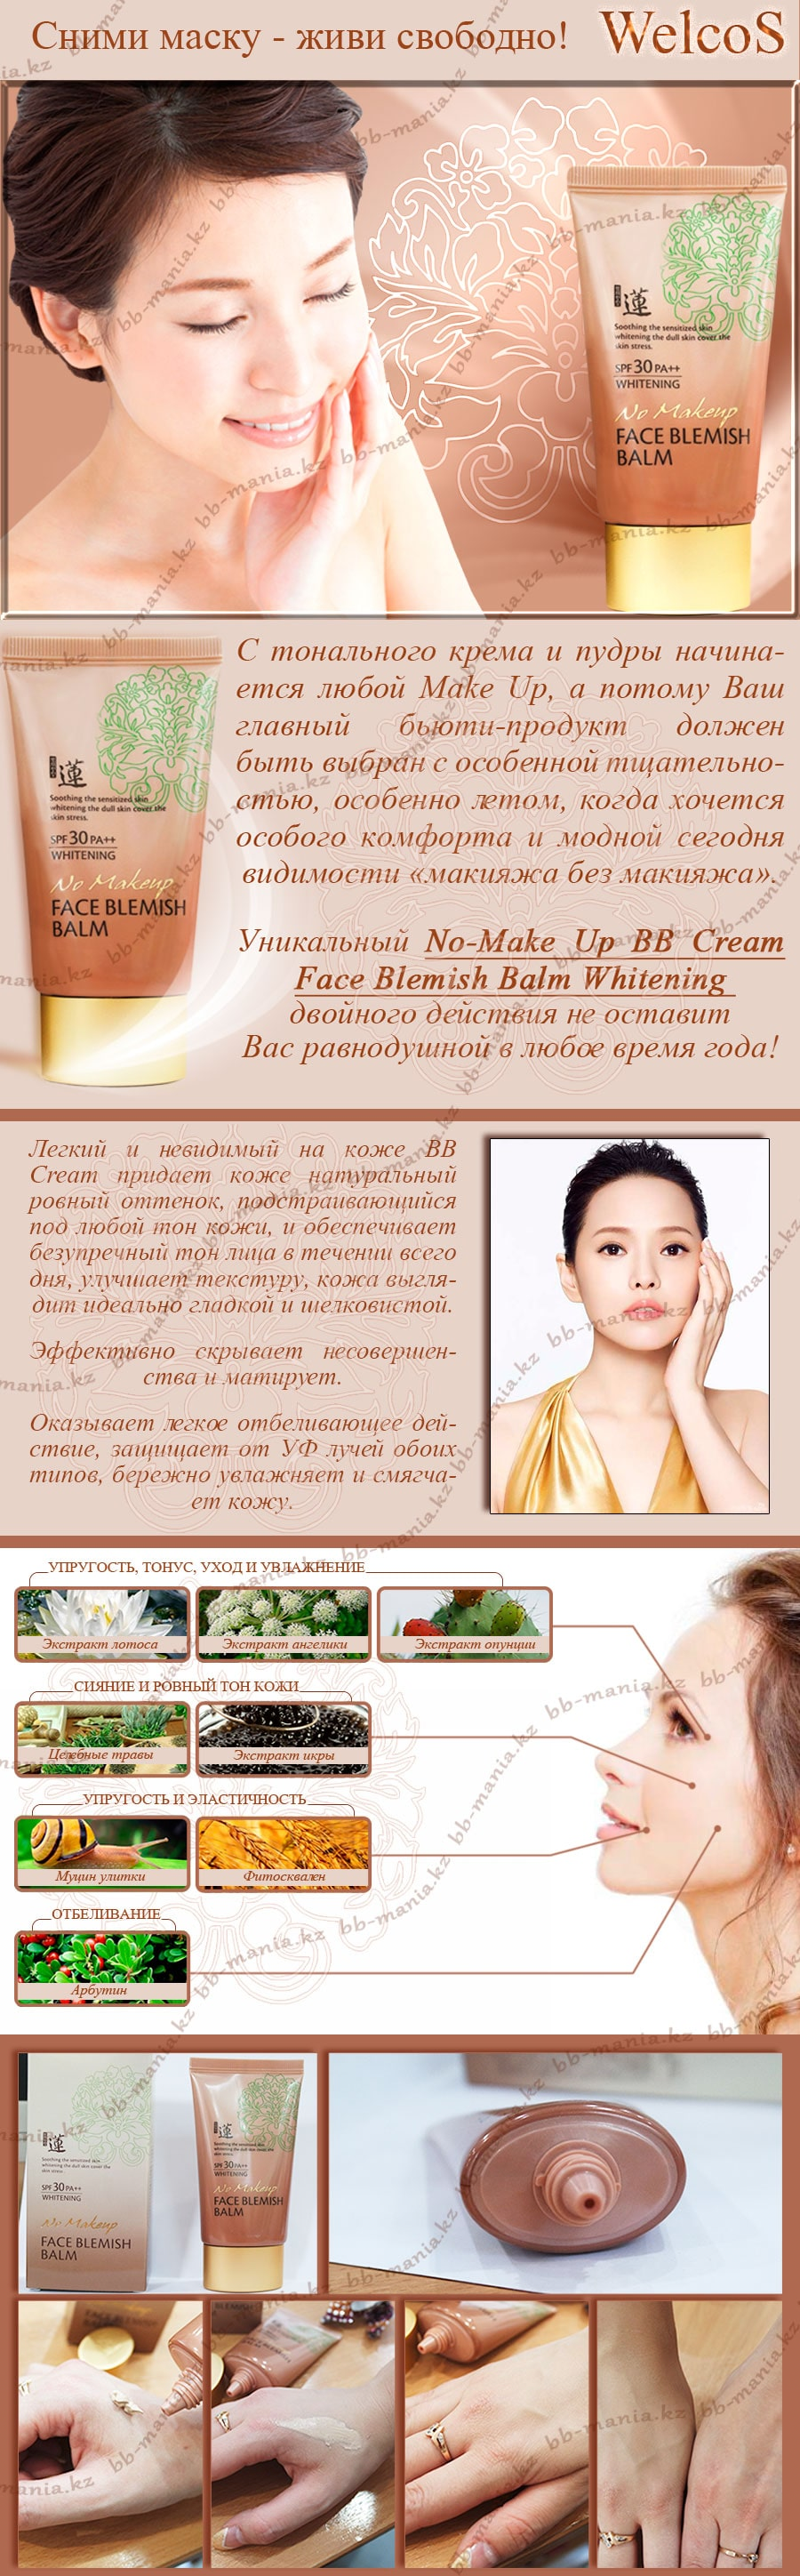 No-Make-Up-BB-Cream-Face-Blemish-Balm-Whitening-[Welcos]-min